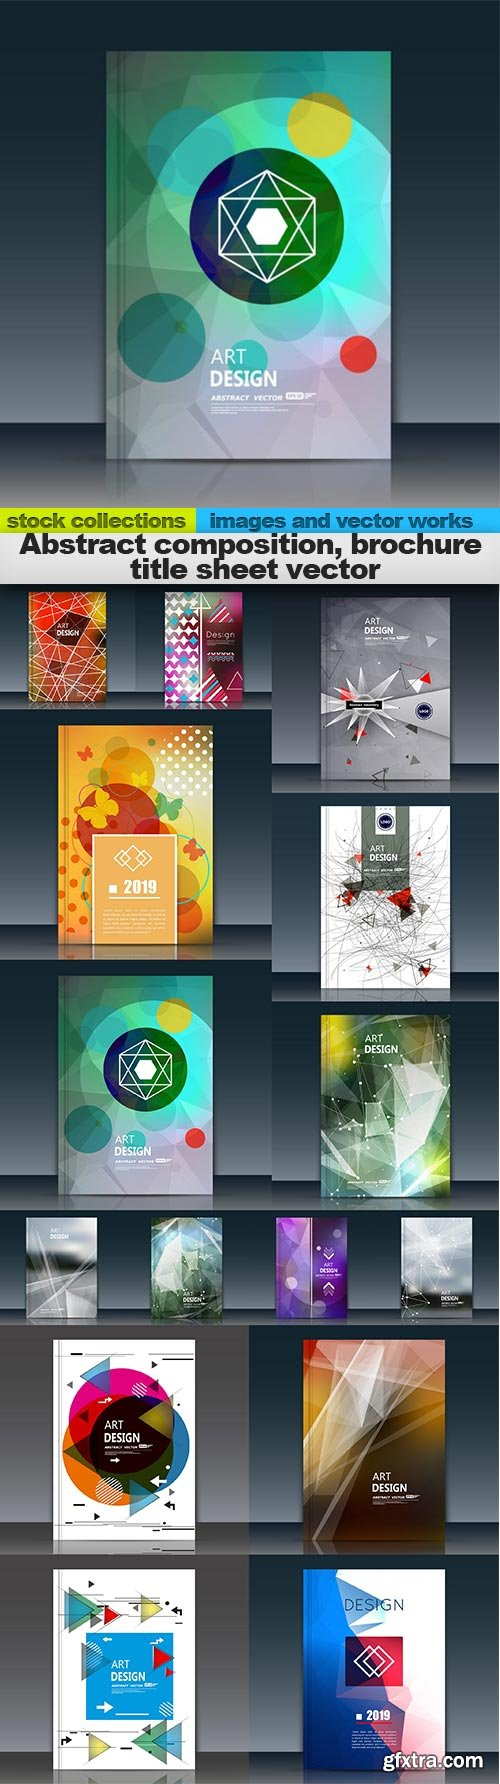 Abstract composition, brochure title sheet vector, 15 x EPS